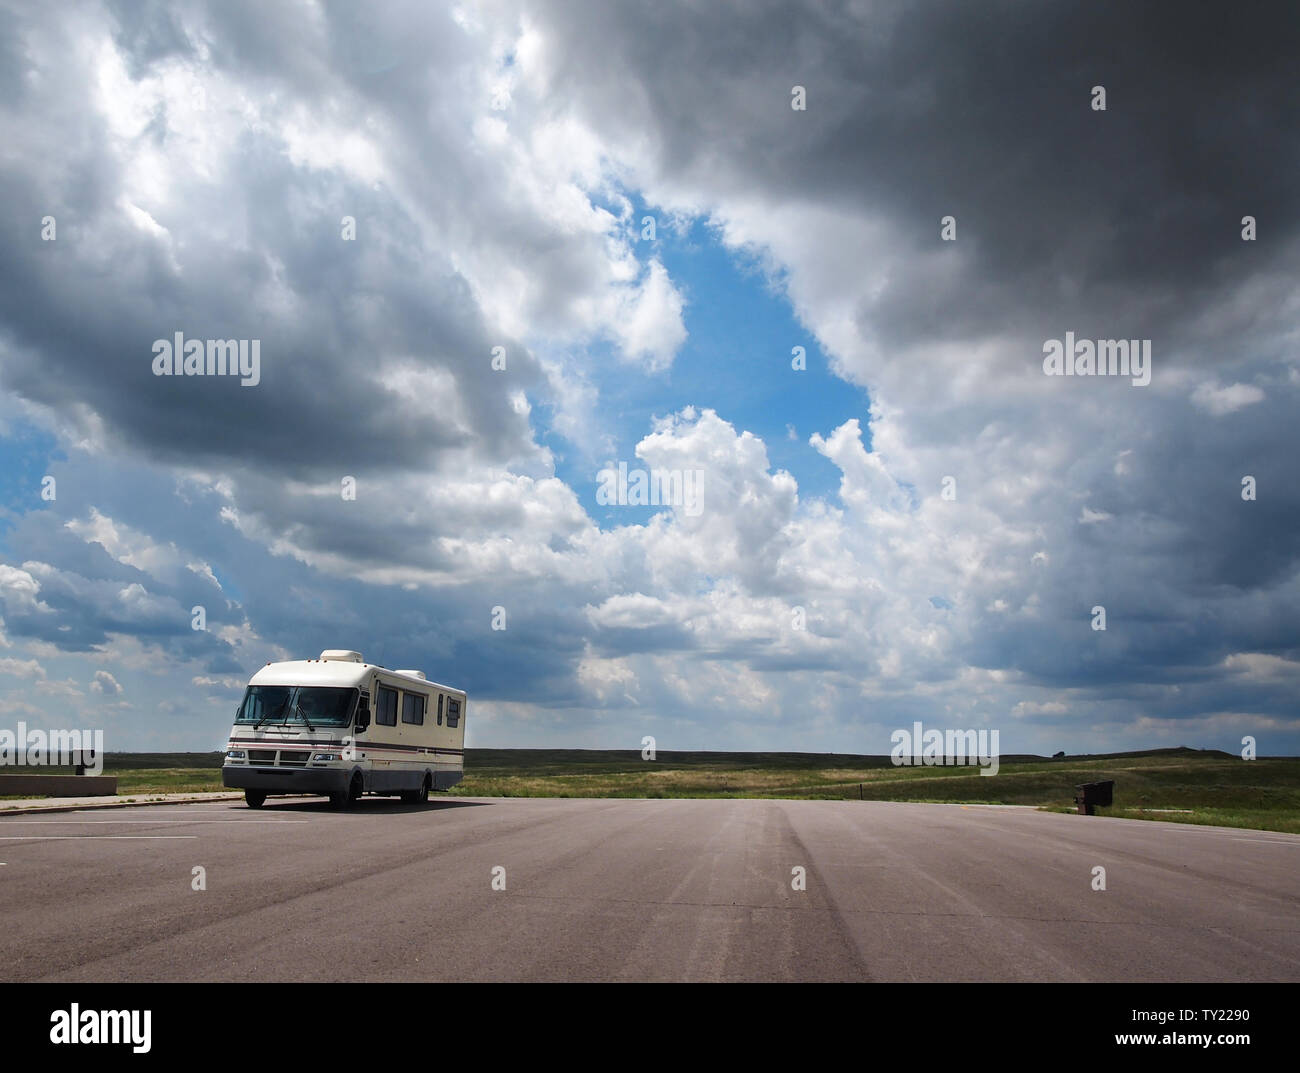 A recreational vehical is parked at a highway rest stop and scenic overlook out in the Nebraska prairie under a big sky with dramatic clouds. Stock Photo